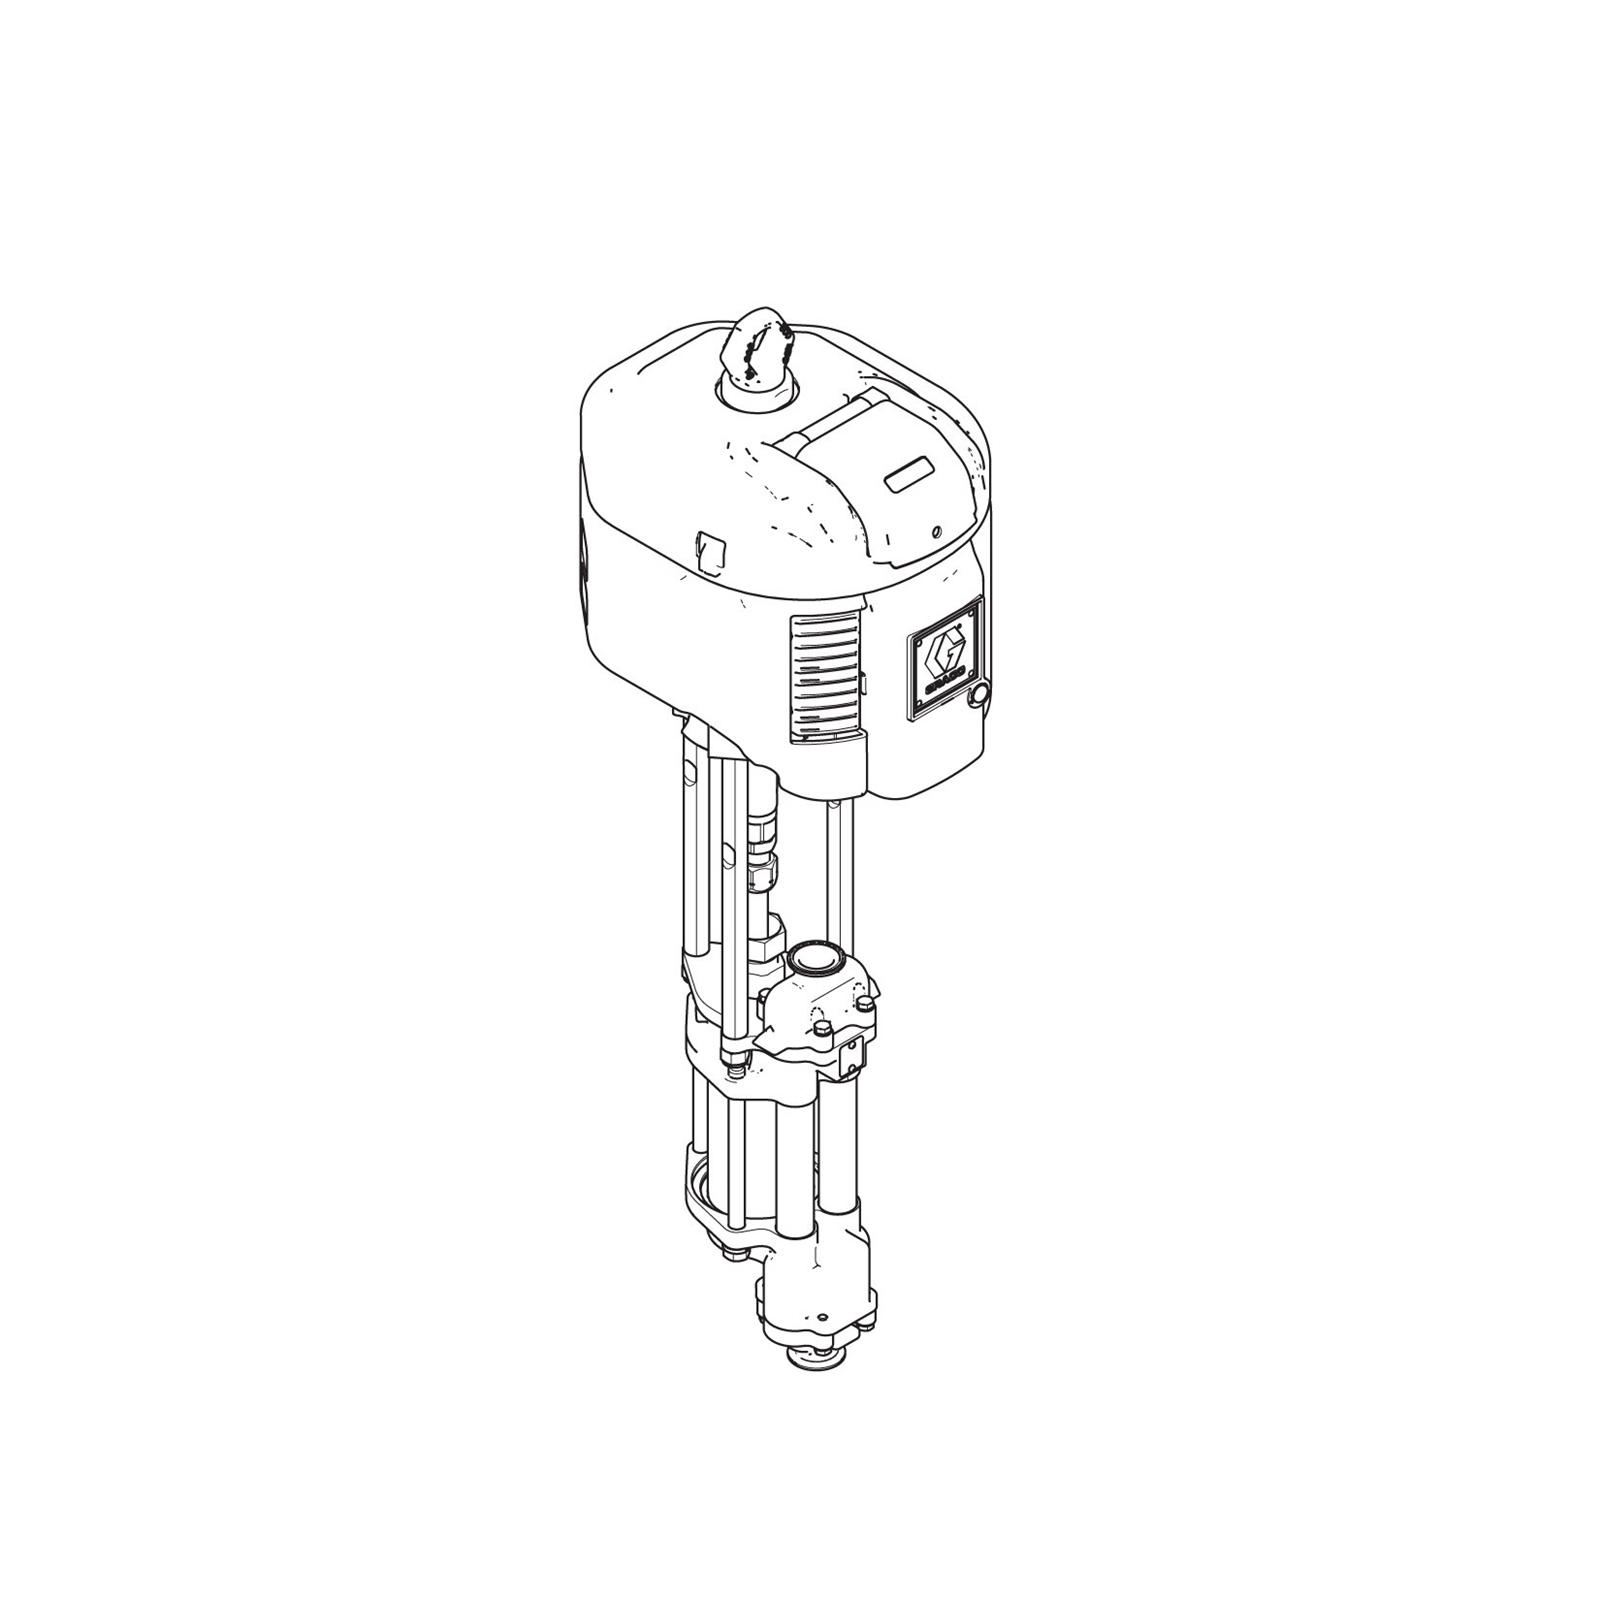 High-Flo 4-Ball Pump, CS, 3:1, Low Noise Exhaust, DataTrak